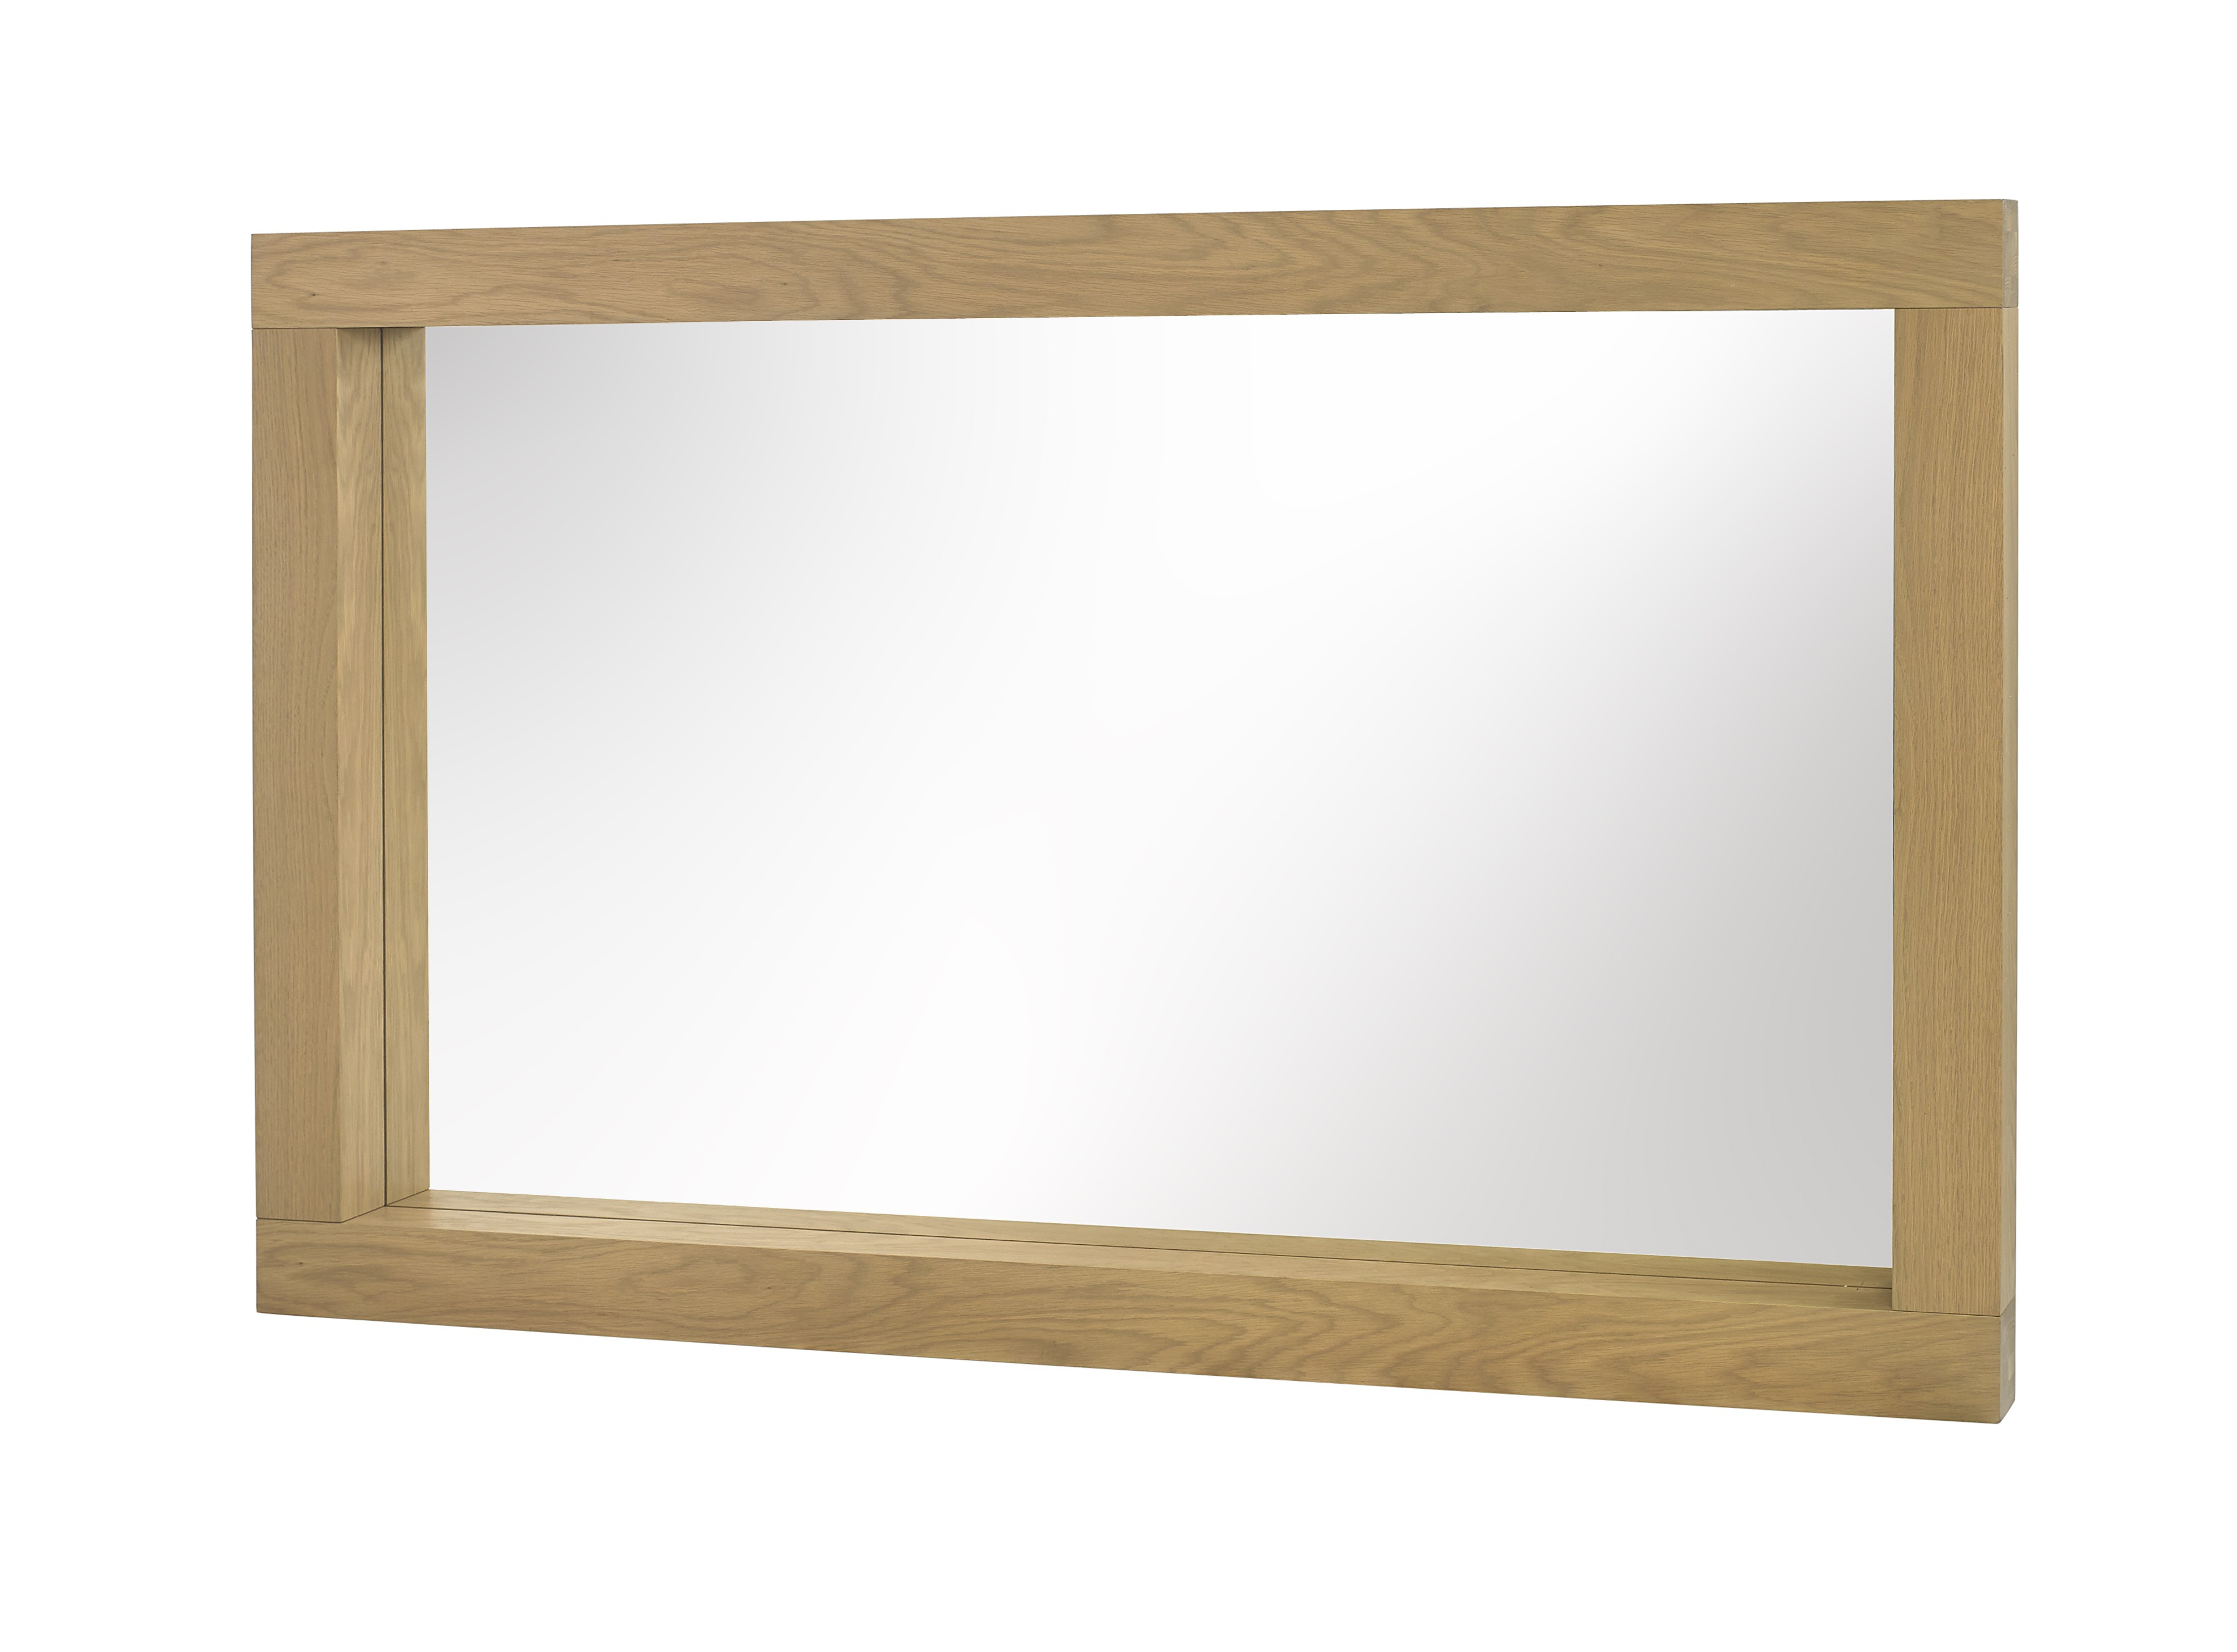 Landscape Wall Mirrors Throughout Best And Newest Turin Light Oak Wall Mirror (Gallery 10 of 20)